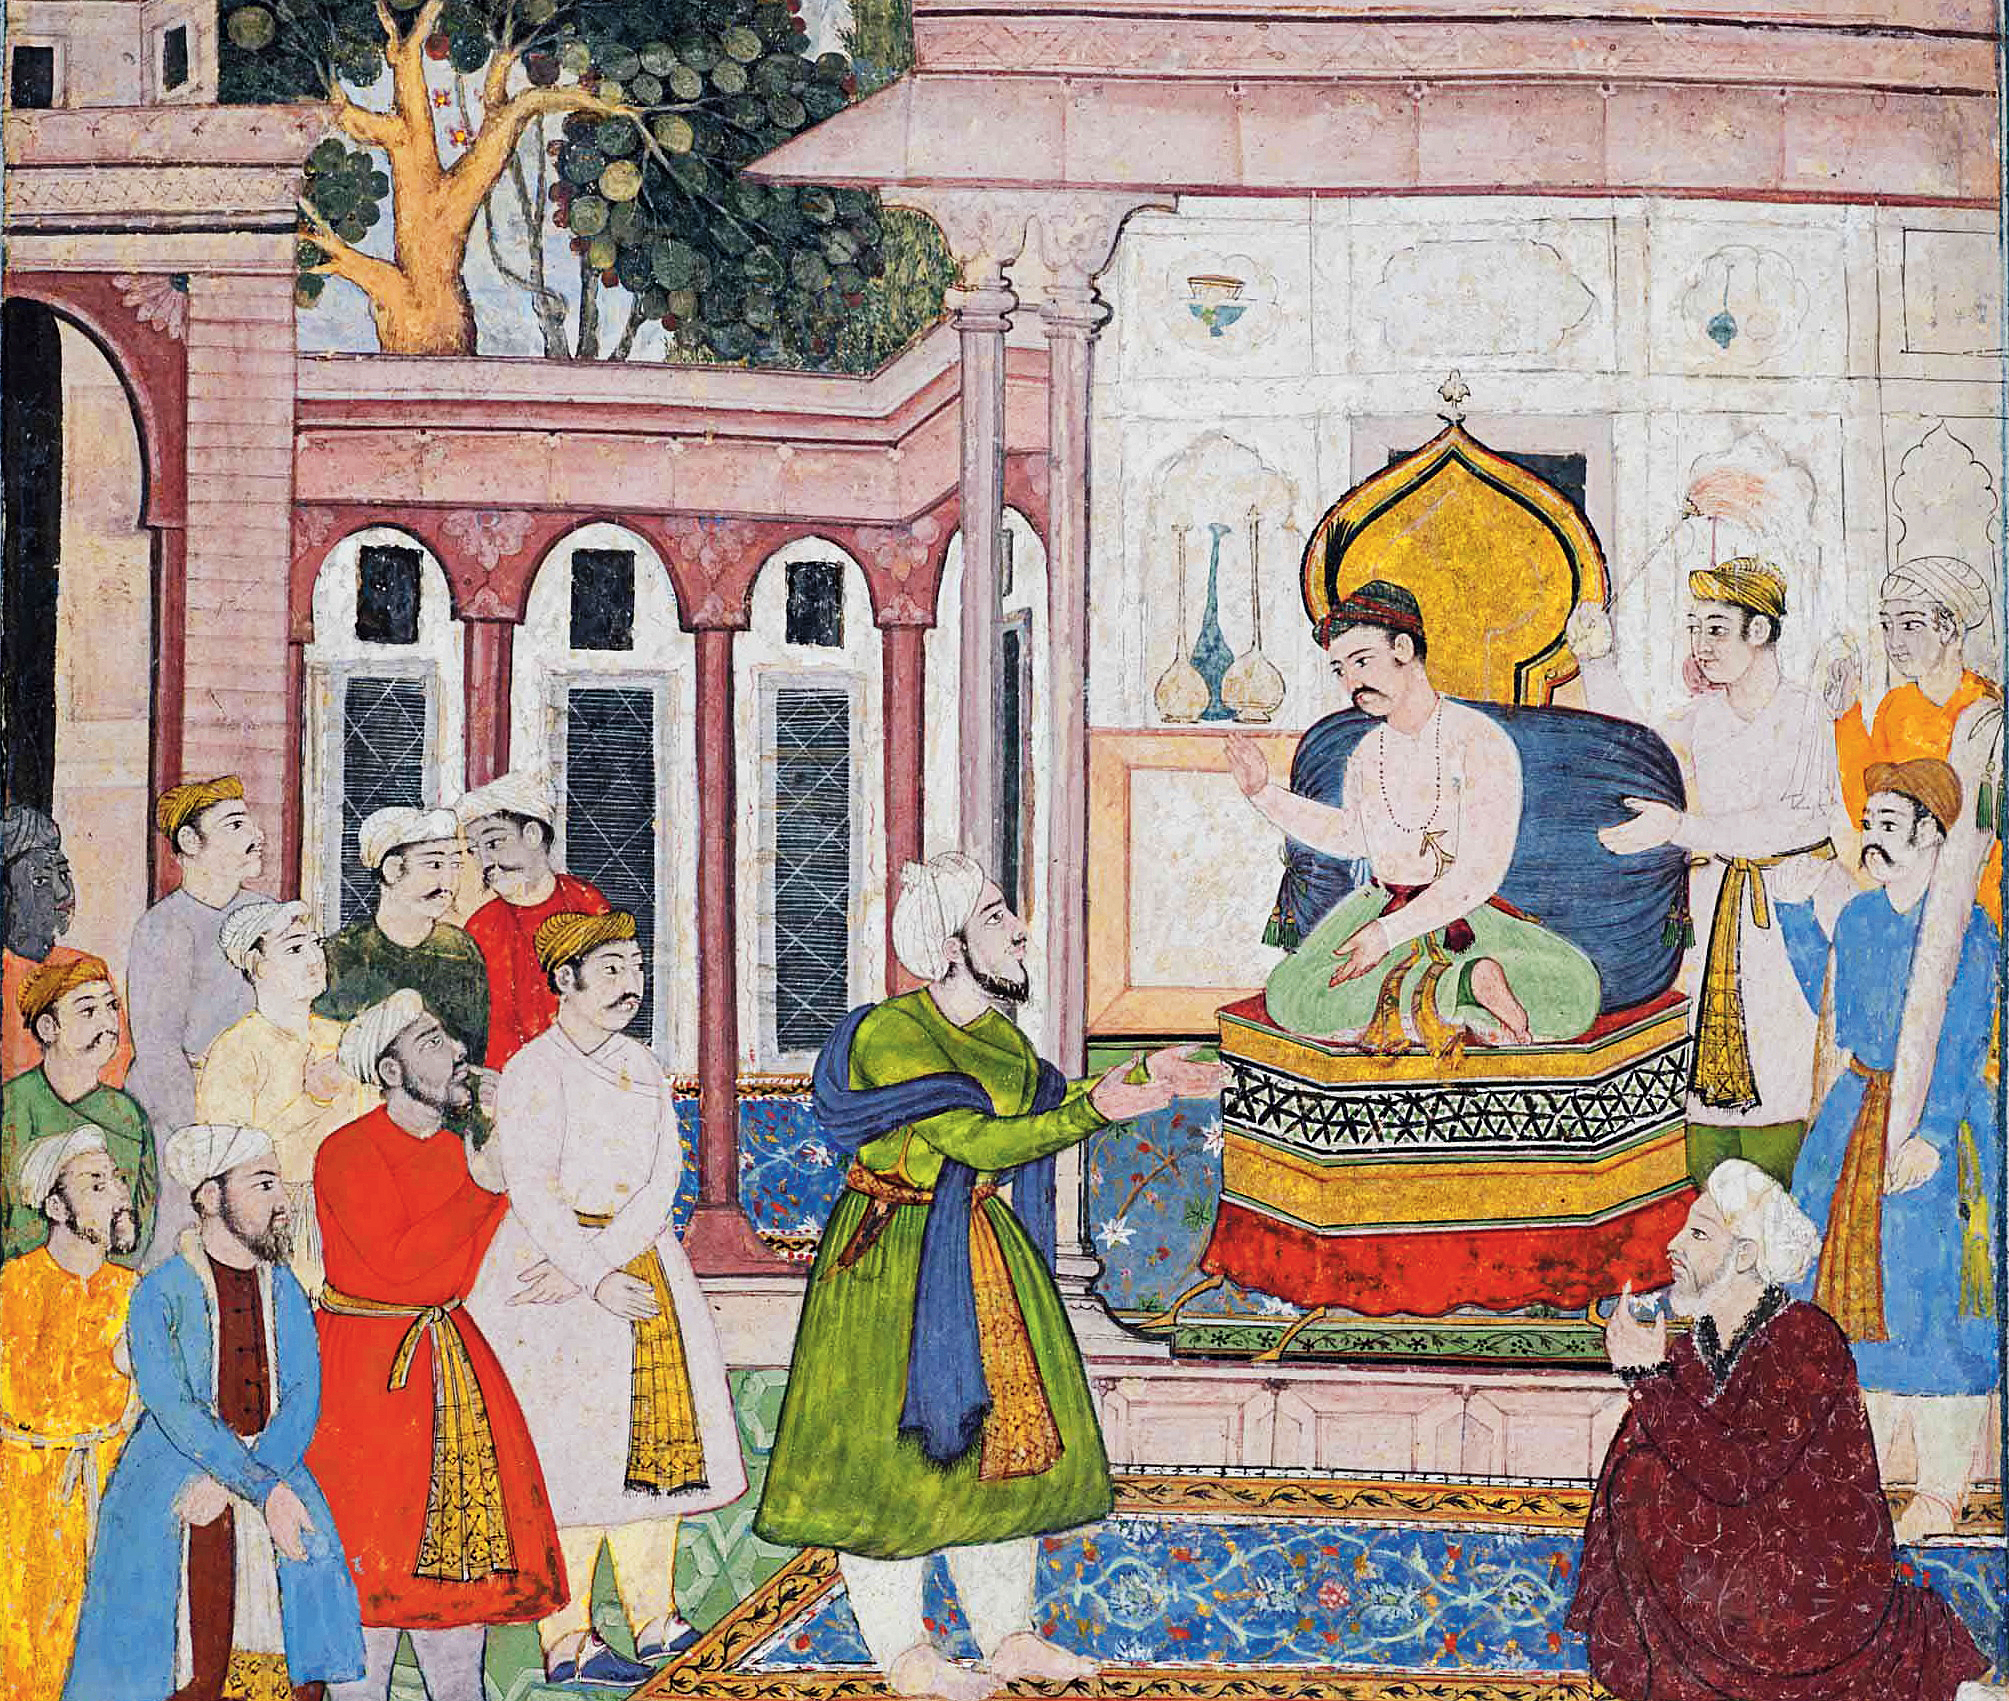 The Emperor Akbar is petitioned by a courtier, Circa 1590-95